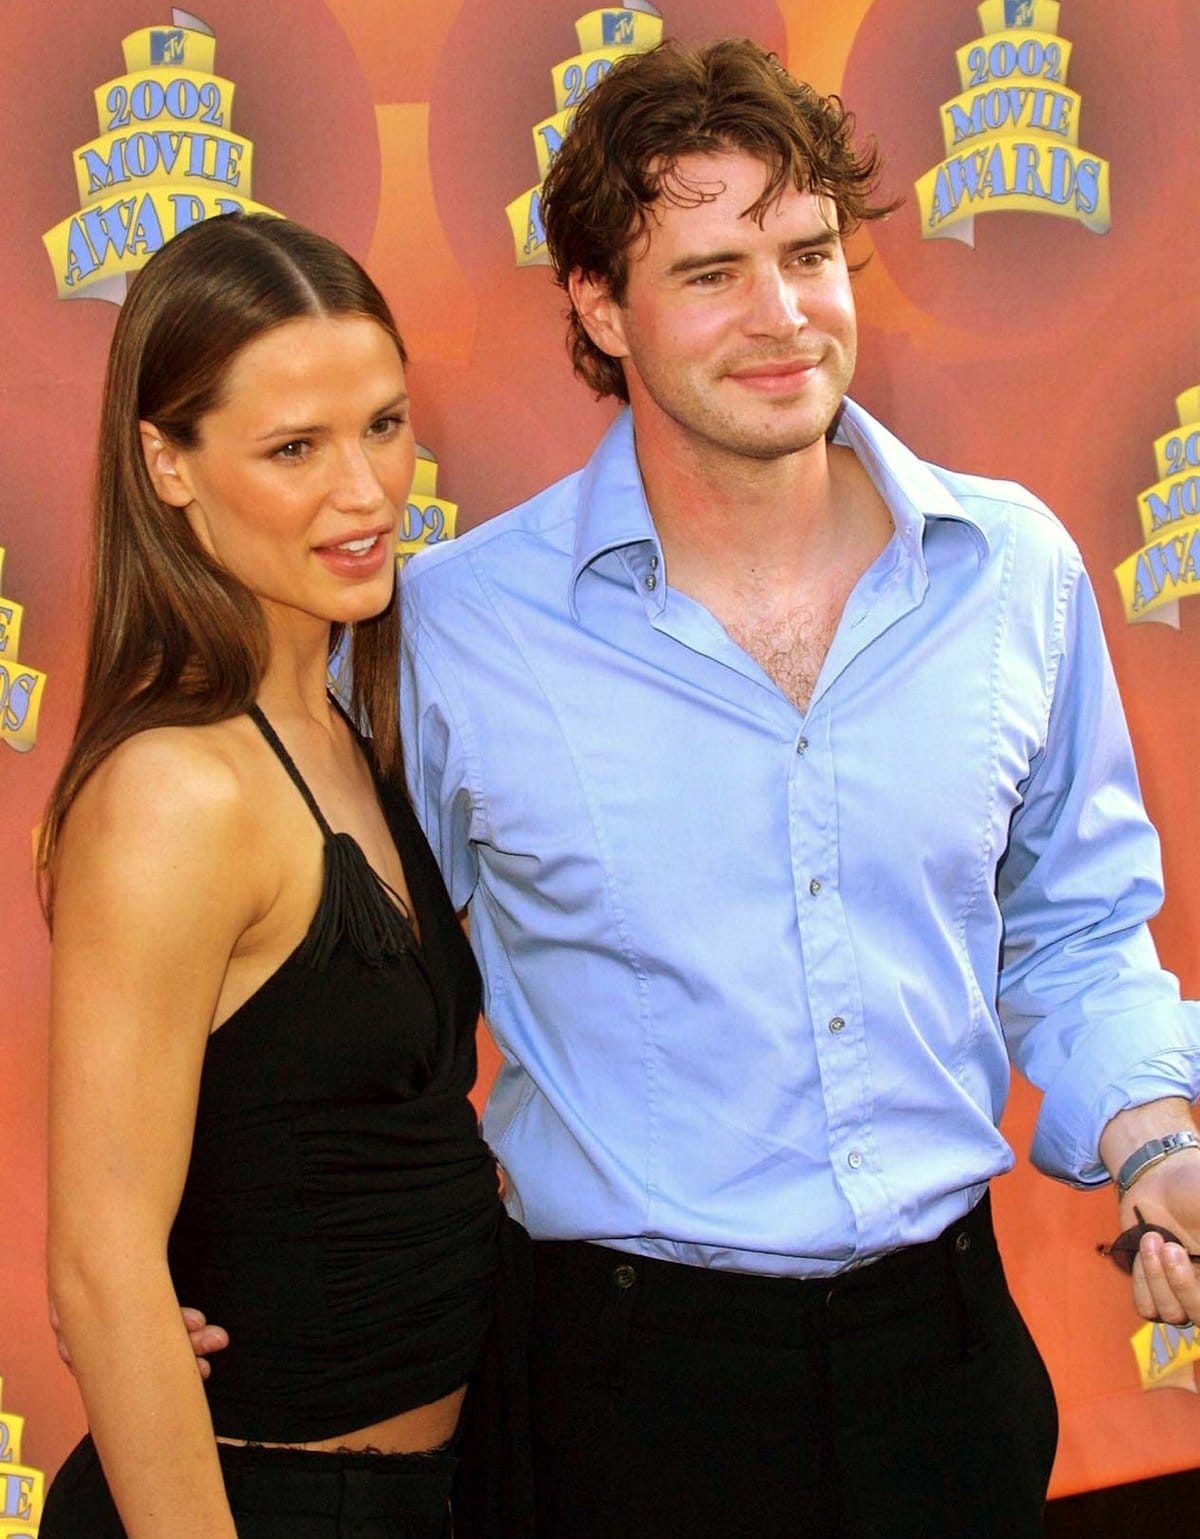 Jennifer Garner and Scott Foley married in 2000 and separated in 2003